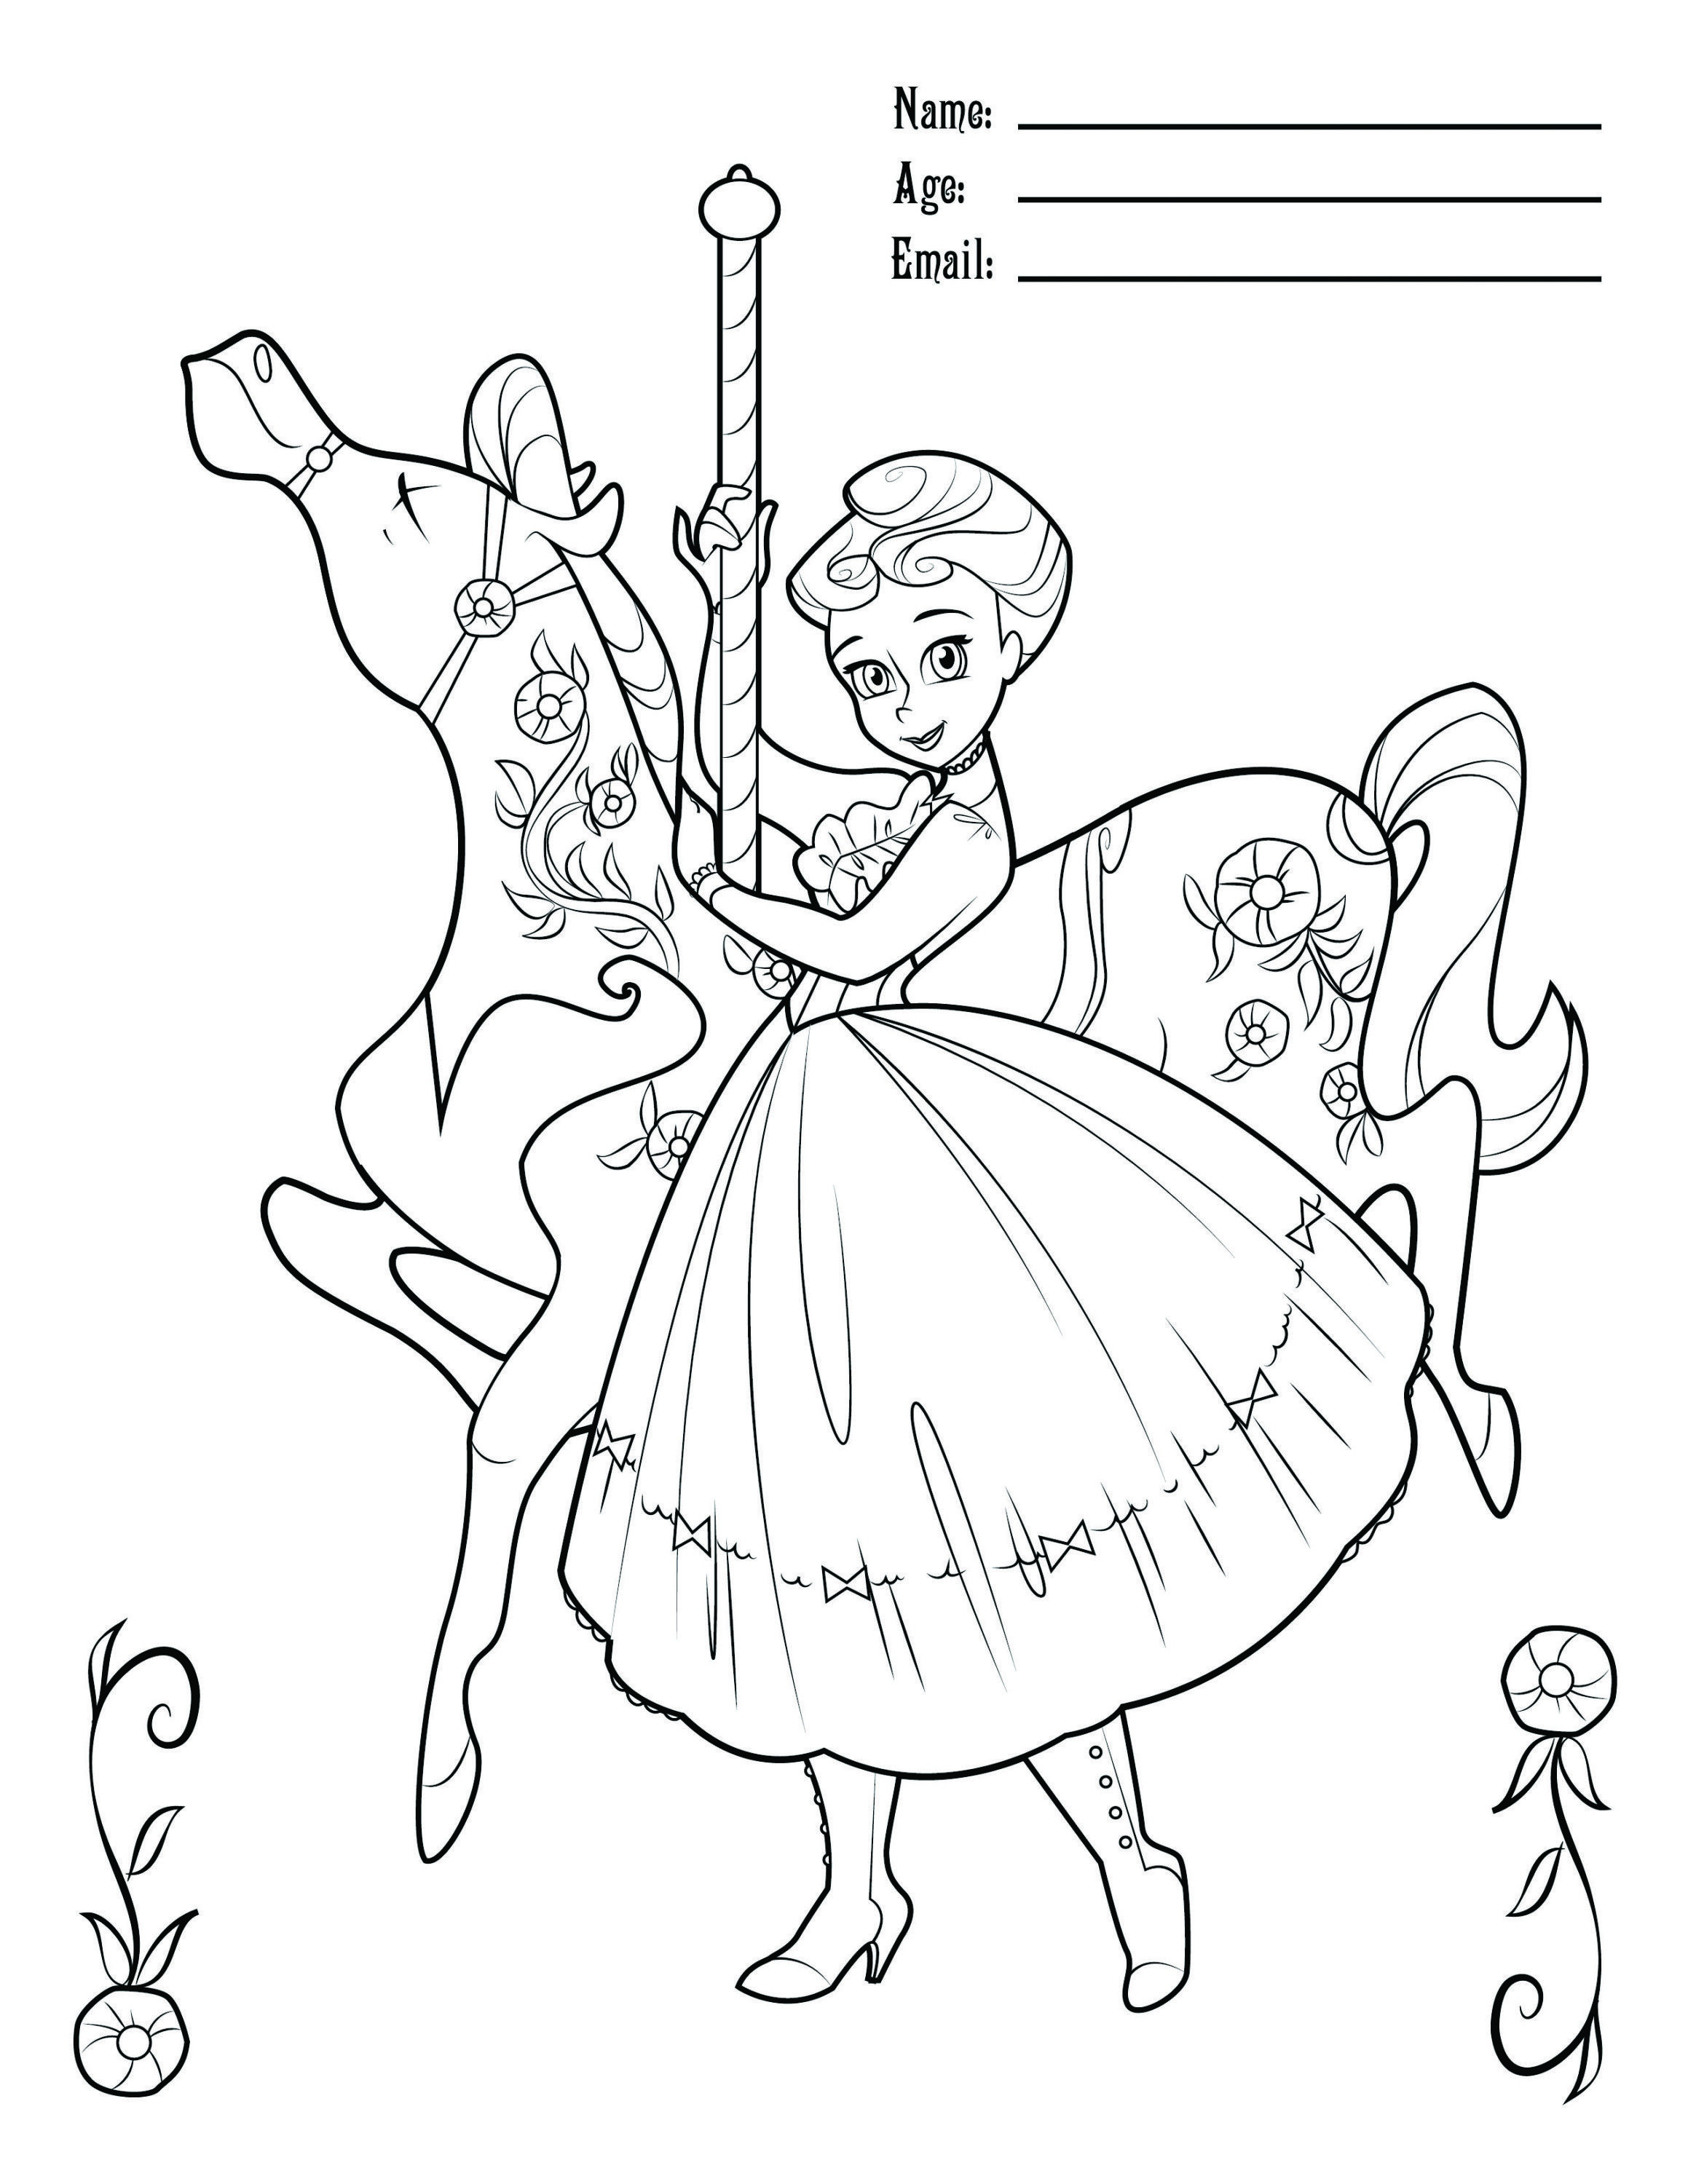 It's time for another coloring contest--Mary Poppins is